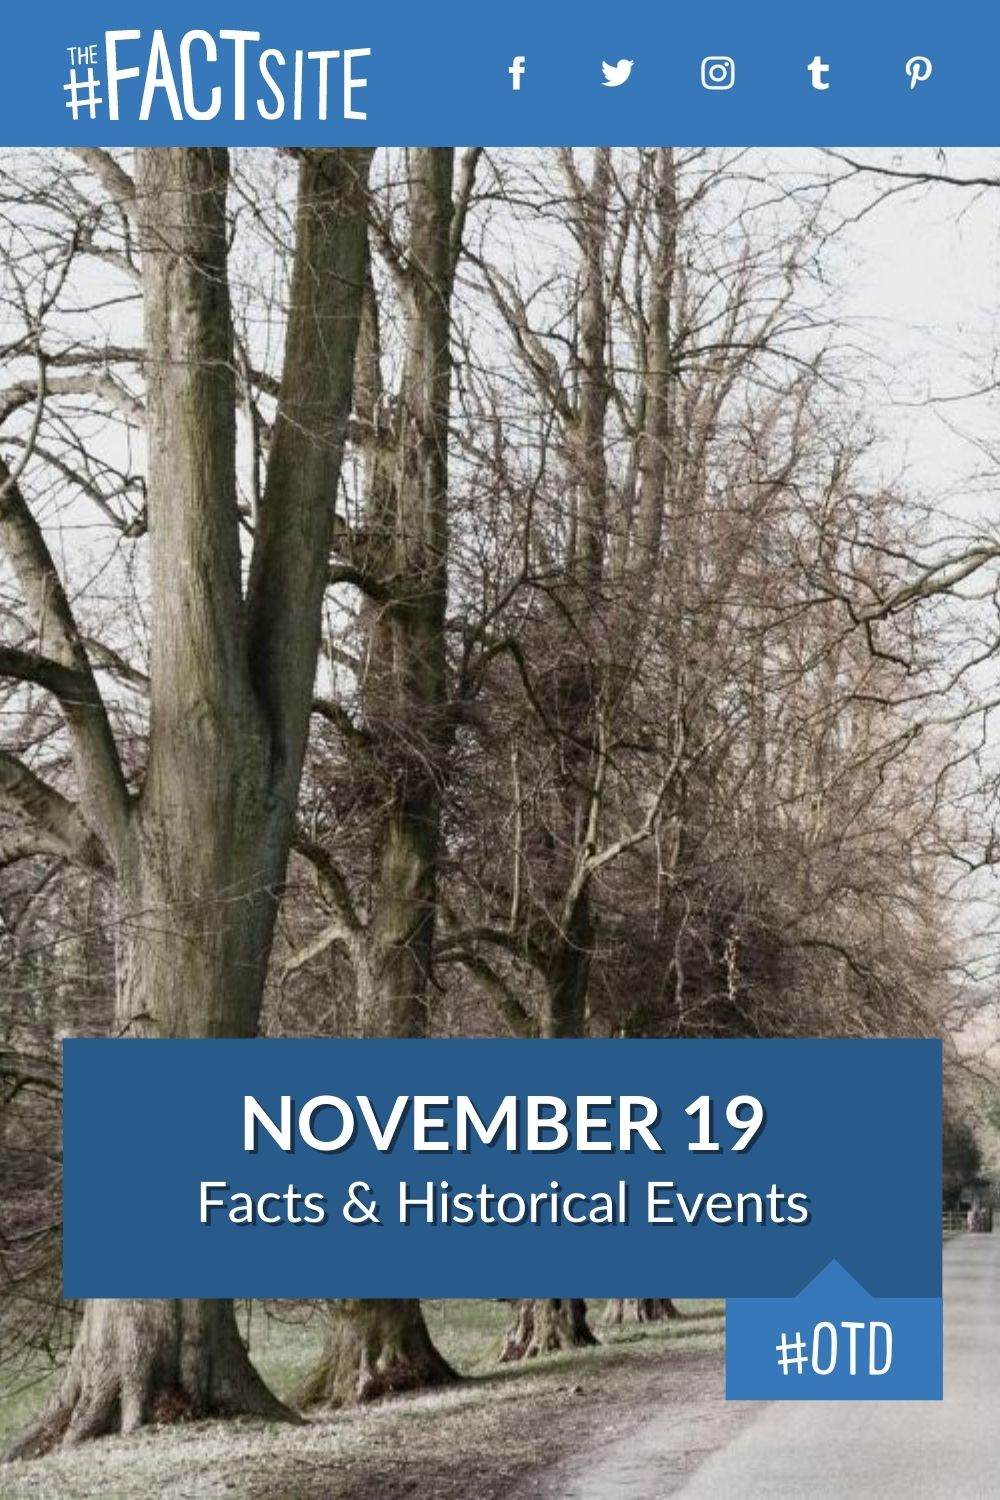 Facts & Historic Events That Happened on November 19